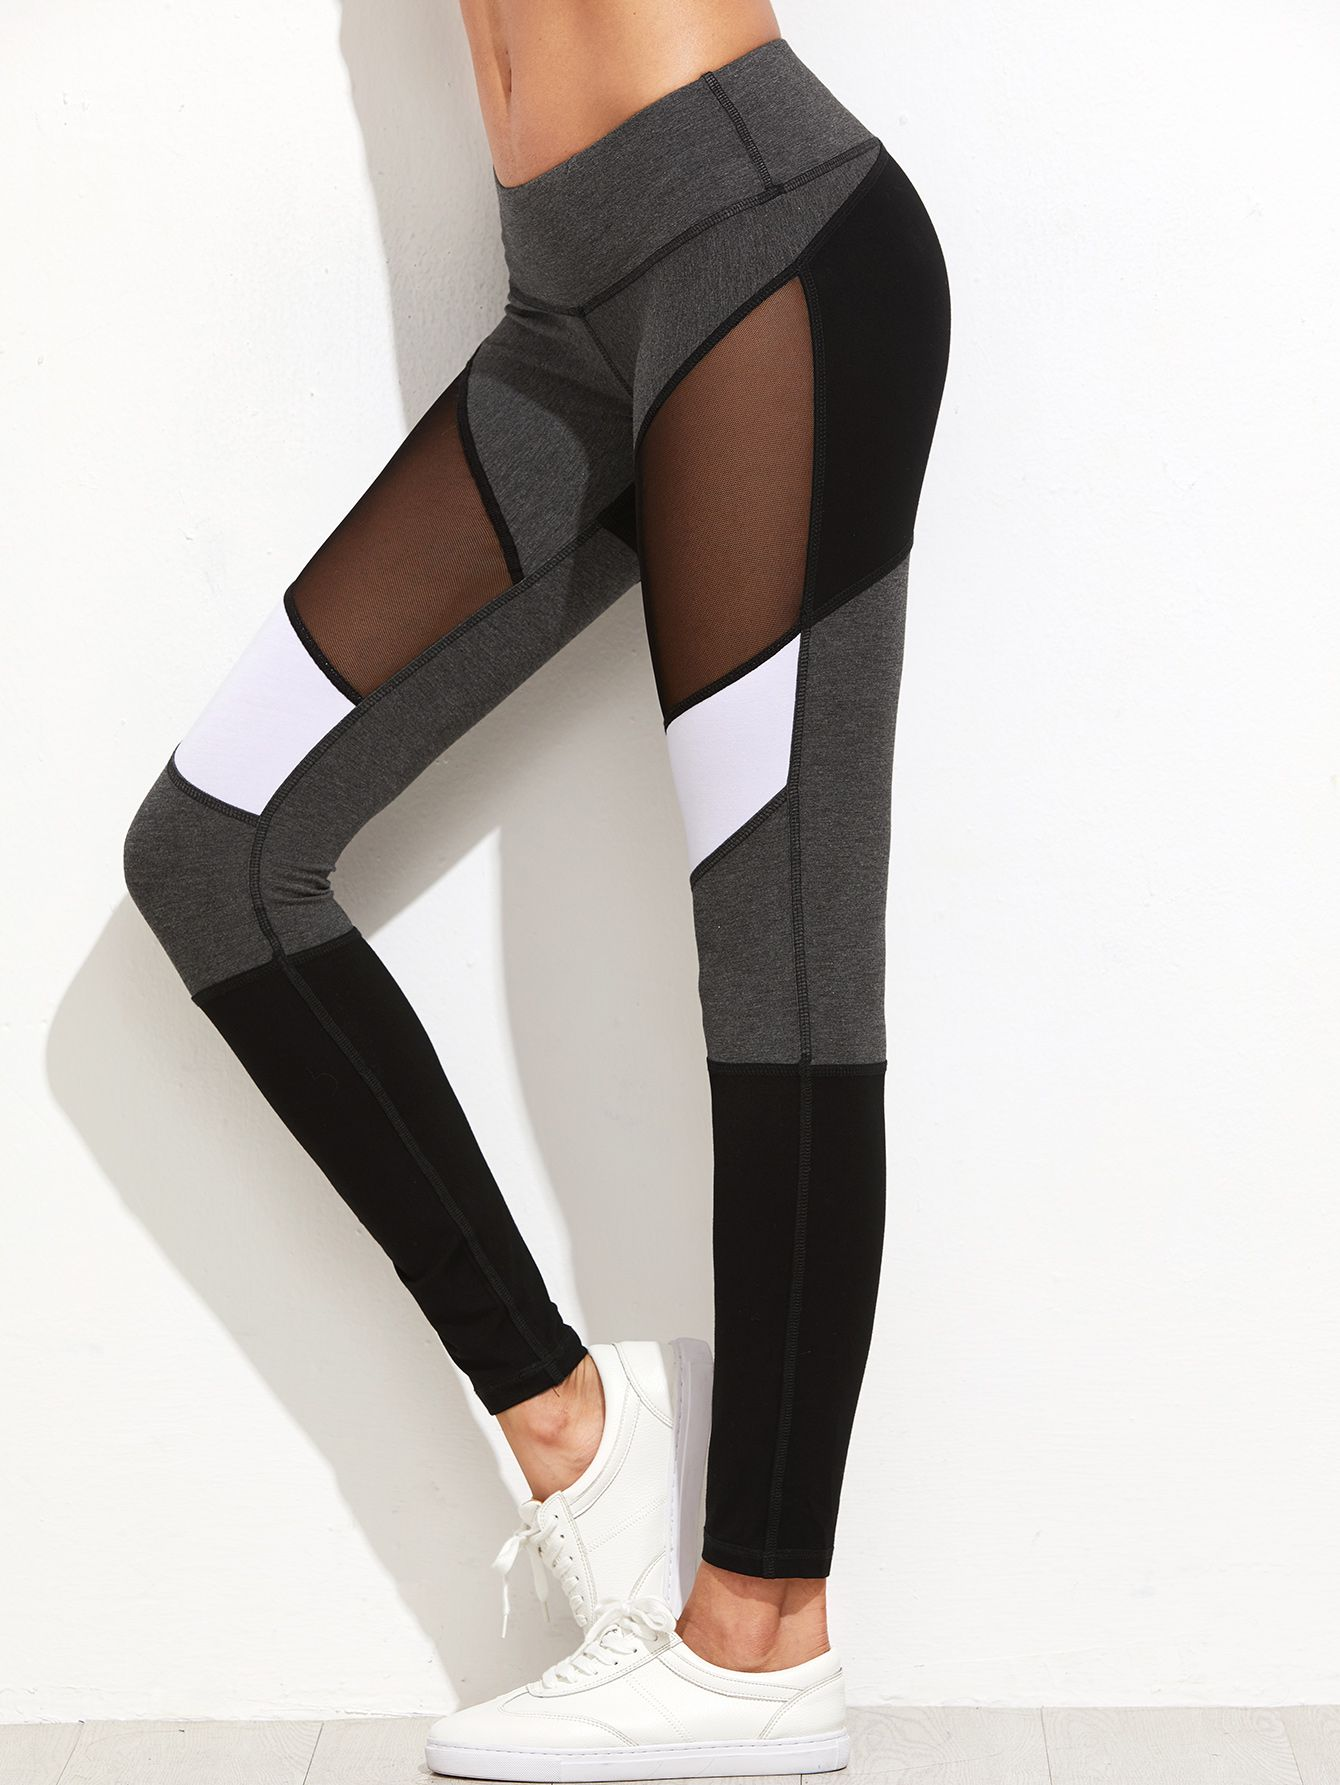 b198288c48be6f Shop Color Block Mesh Insert Leggings online. SheIn offers Color Block Mesh  Insert Leggings & more to fit your fashionable needs.